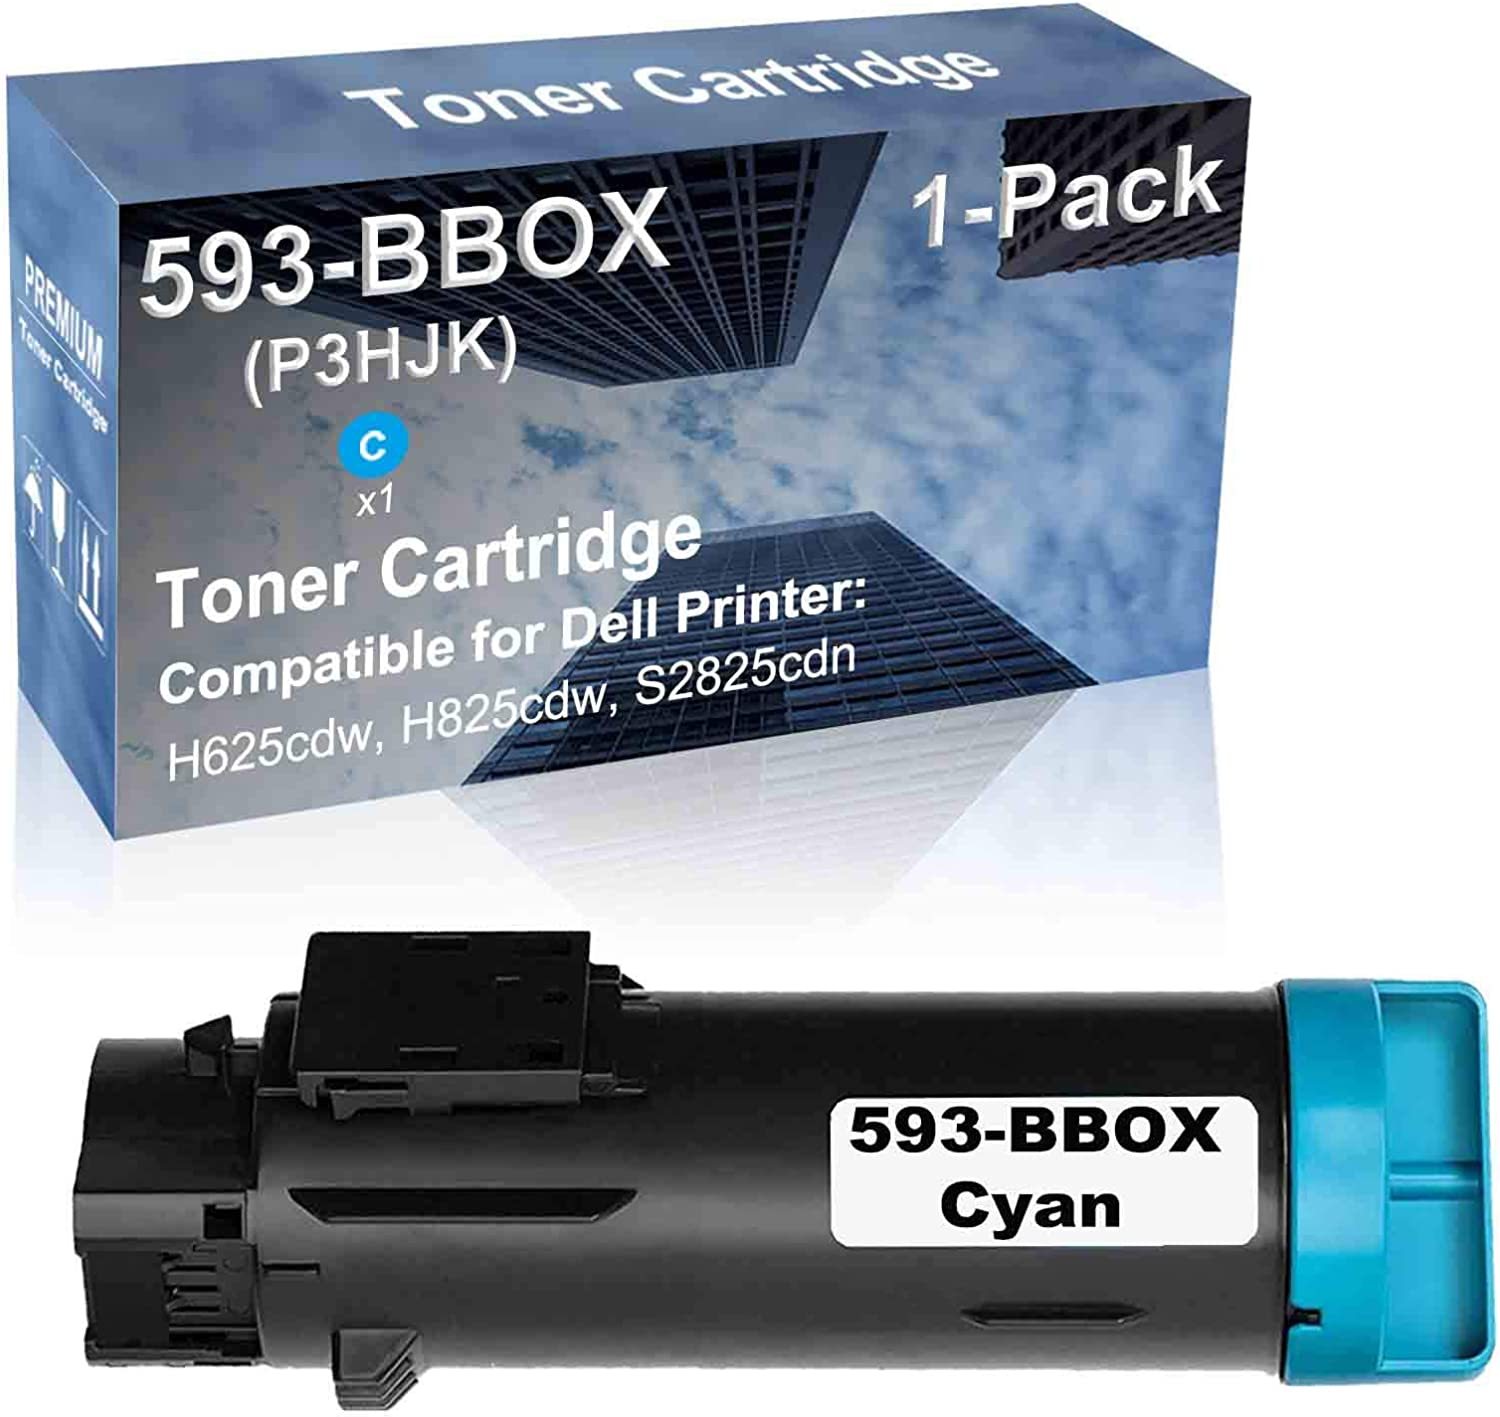 1-Pack (Cyan) Compatible H625cdw, H825cdw, S2825cdn Printer Toner Cartridge High Capacity Replacement for Dell 593-BBOX Toner Cartridge